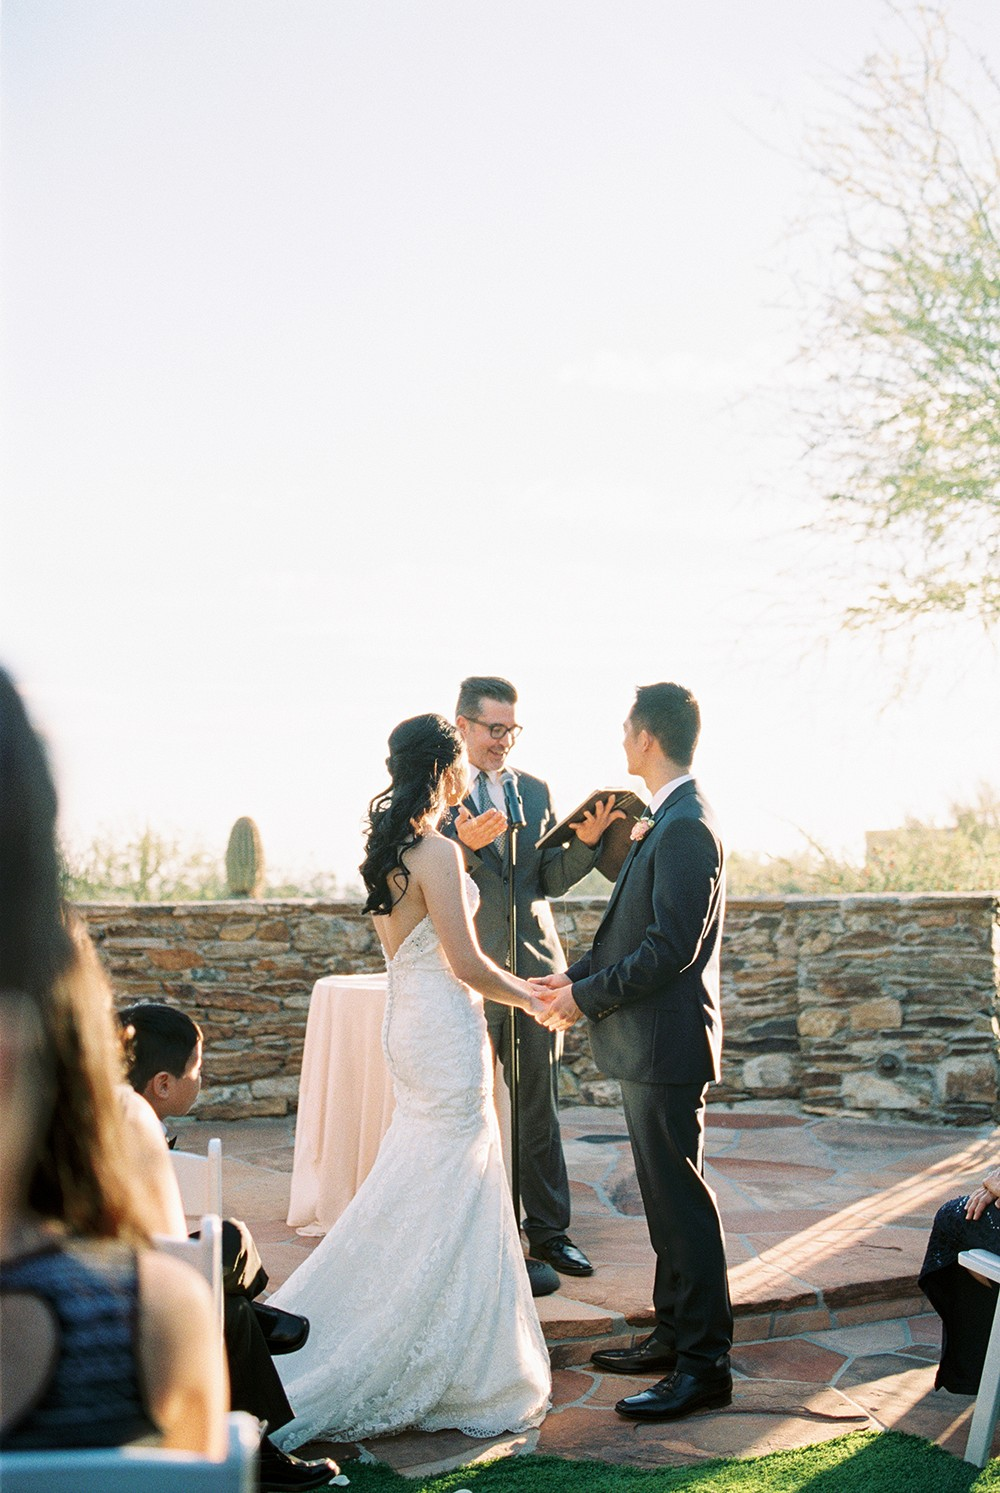 Christine and Mark's Blush and Taupe Outdoor Wedding